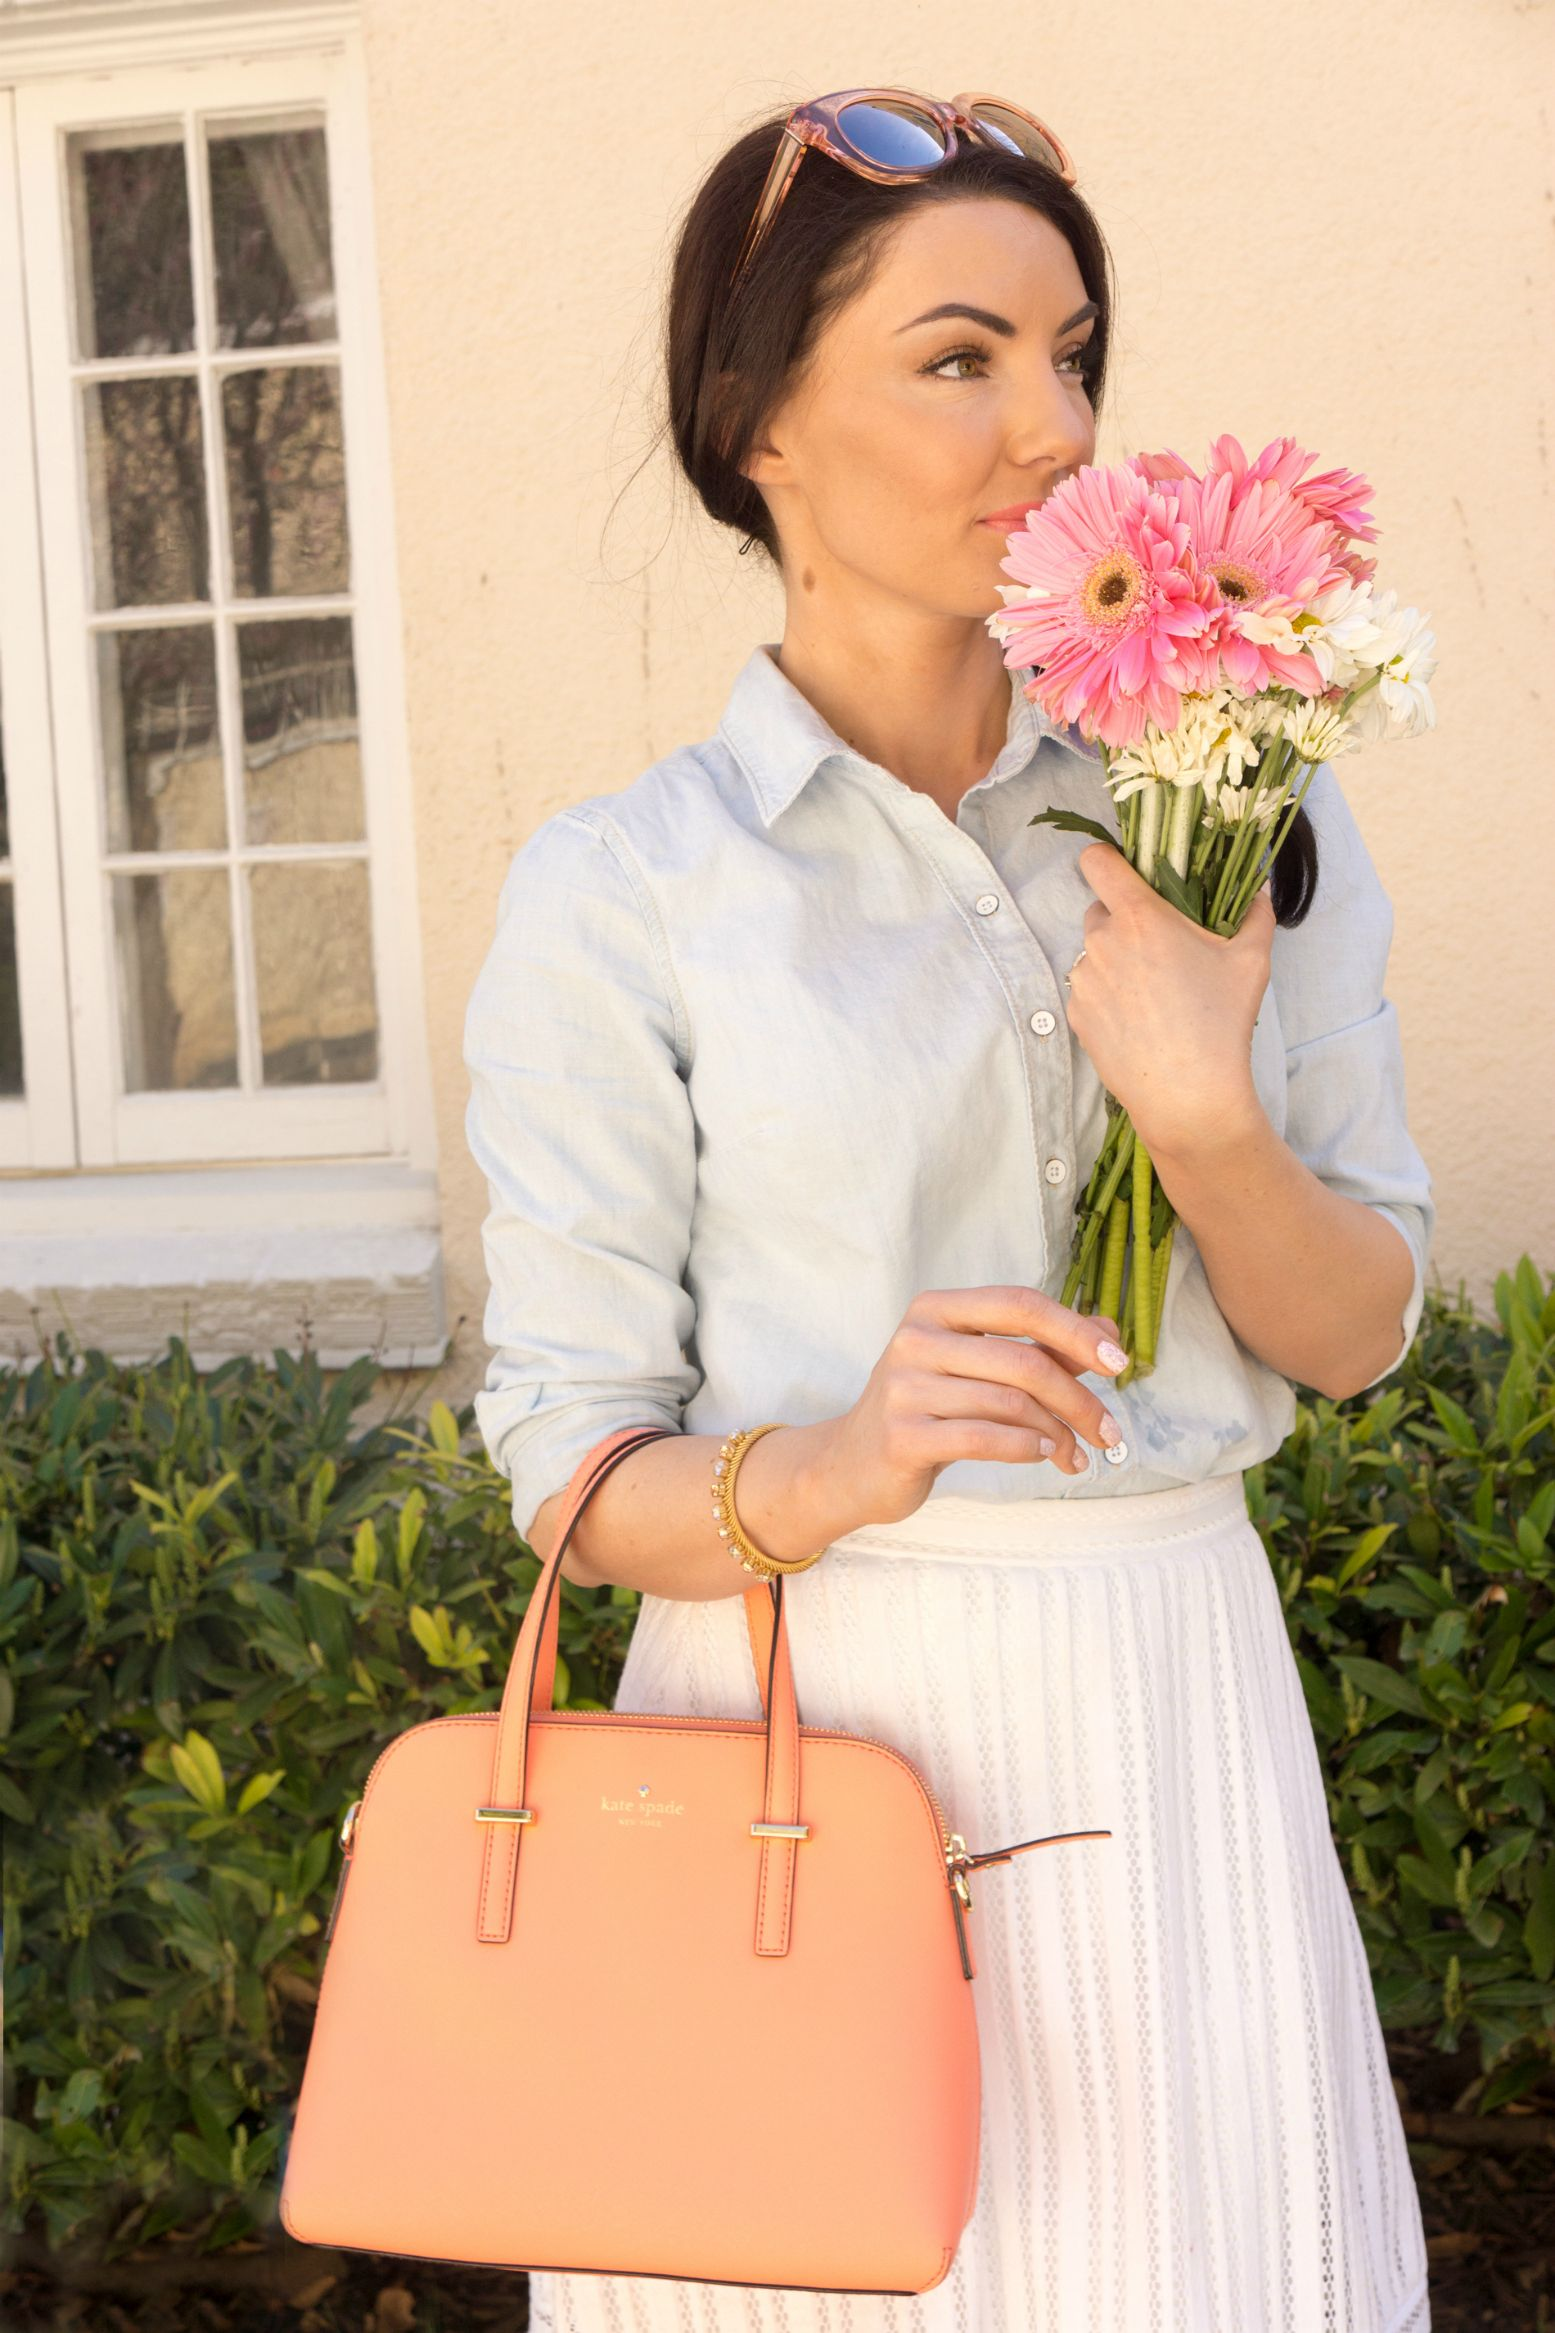 Kate Spade Cedar Street Maise and fresh Spring flowers, ladylike outfit and style